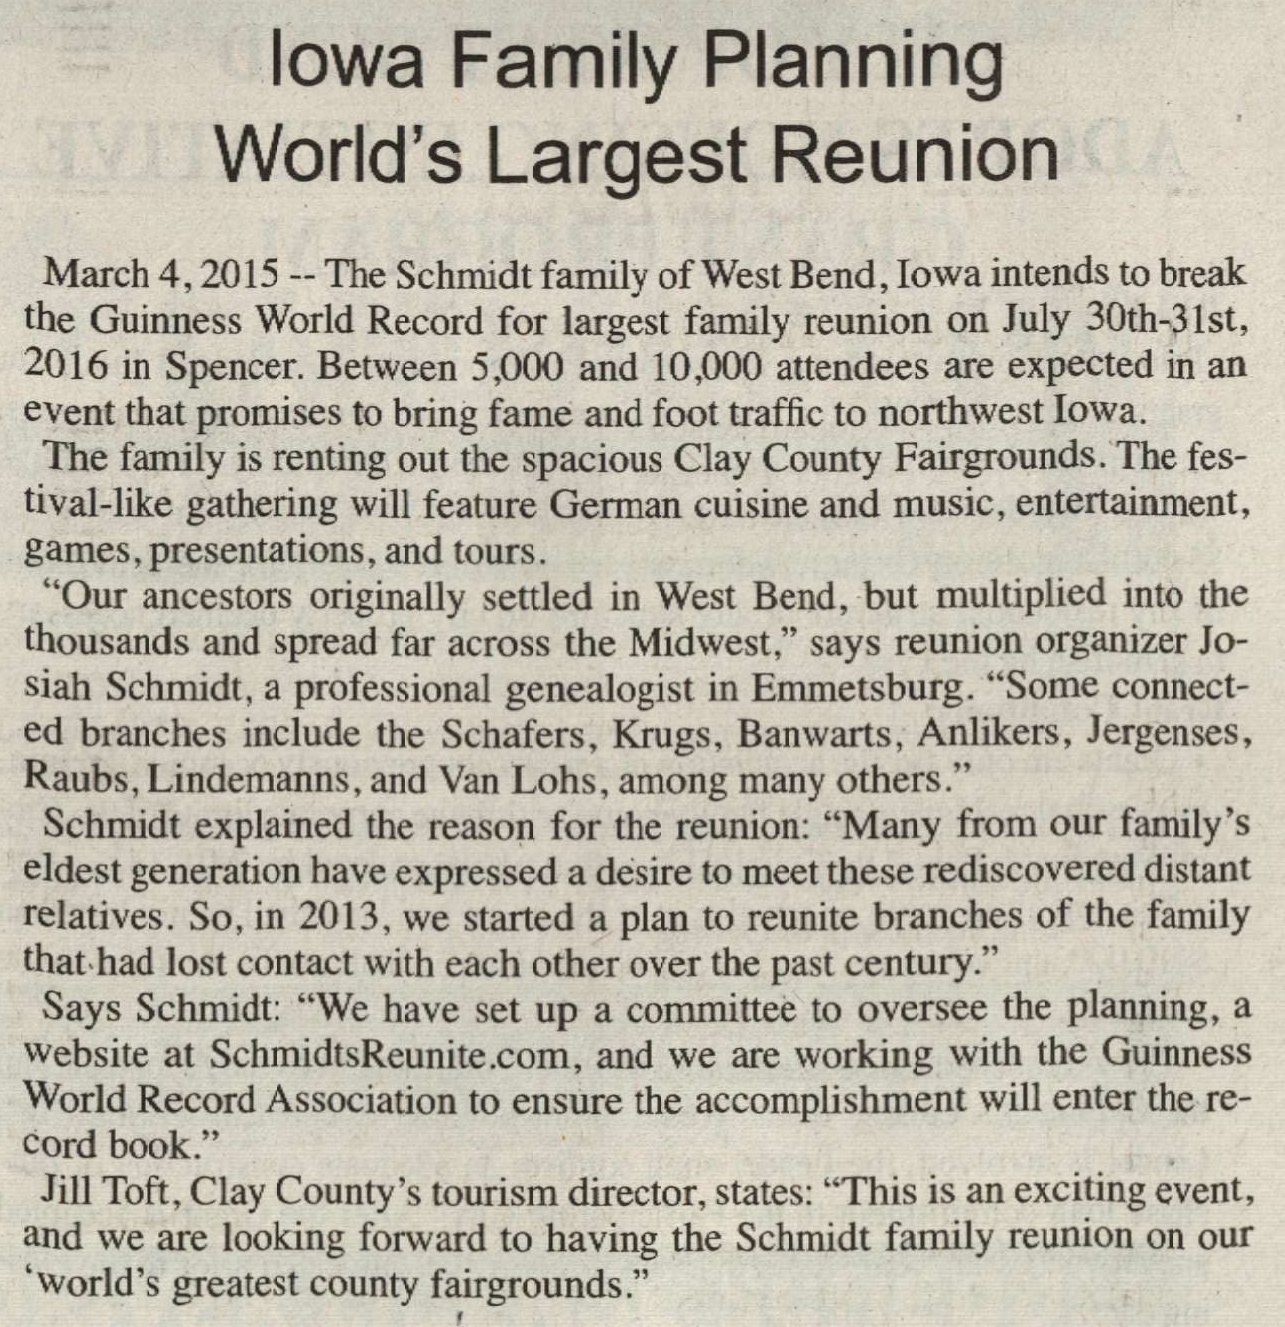 Iowa Family Planning Worlds Largest Reunion - West Bend Journal - 12 and 19 March 2015 - West Bend Journal